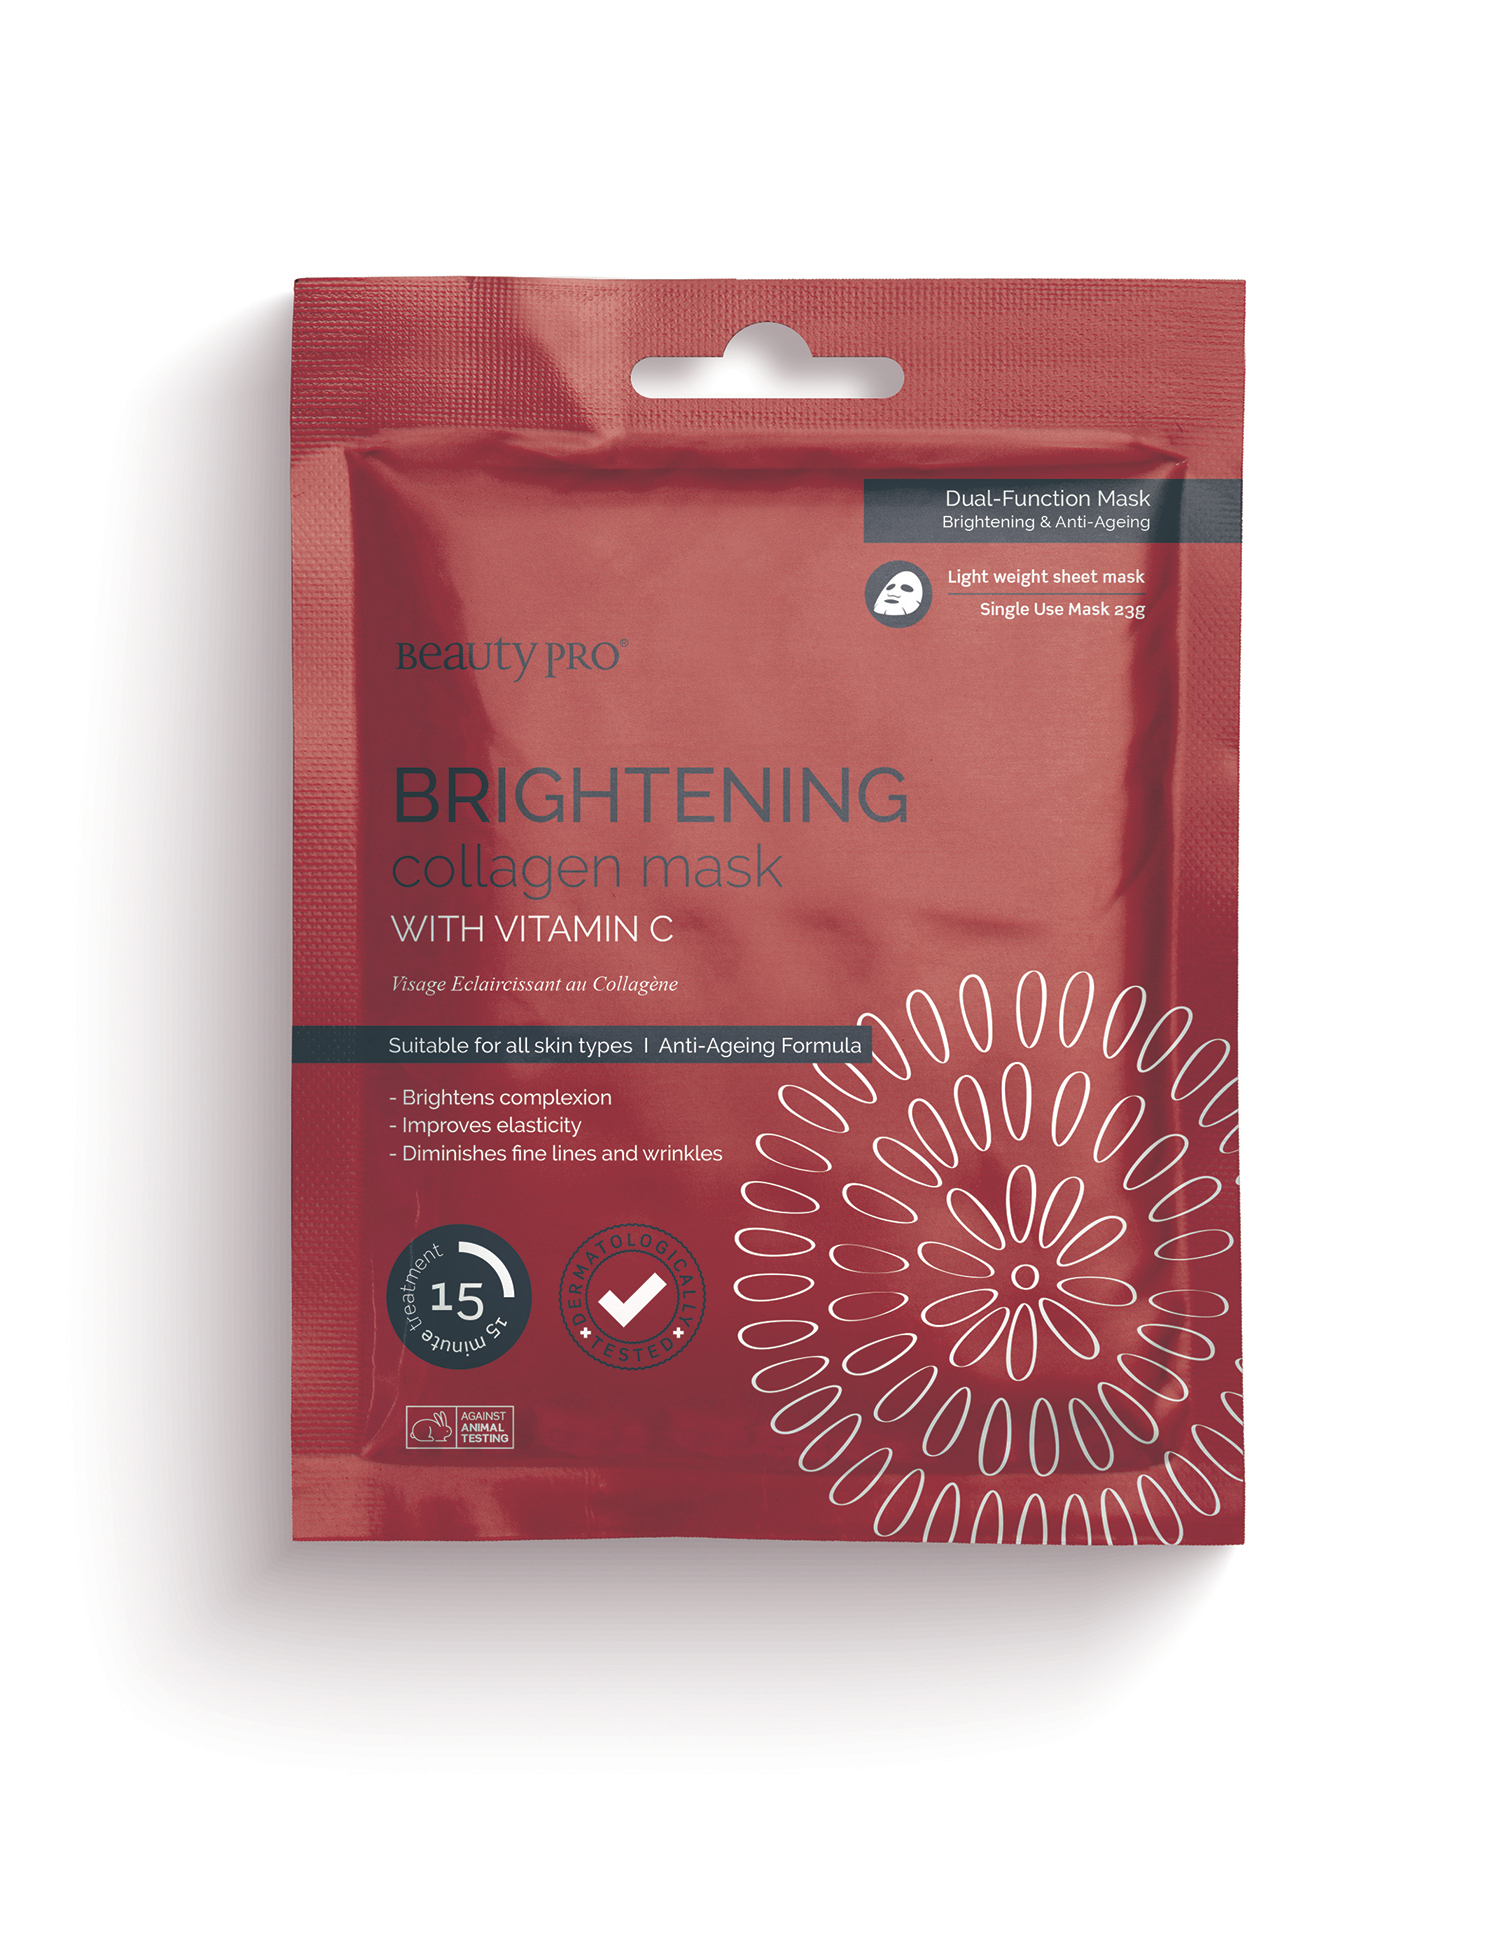 BRIGHTENING Collagen Sheet Mask with Vitamin C 23g